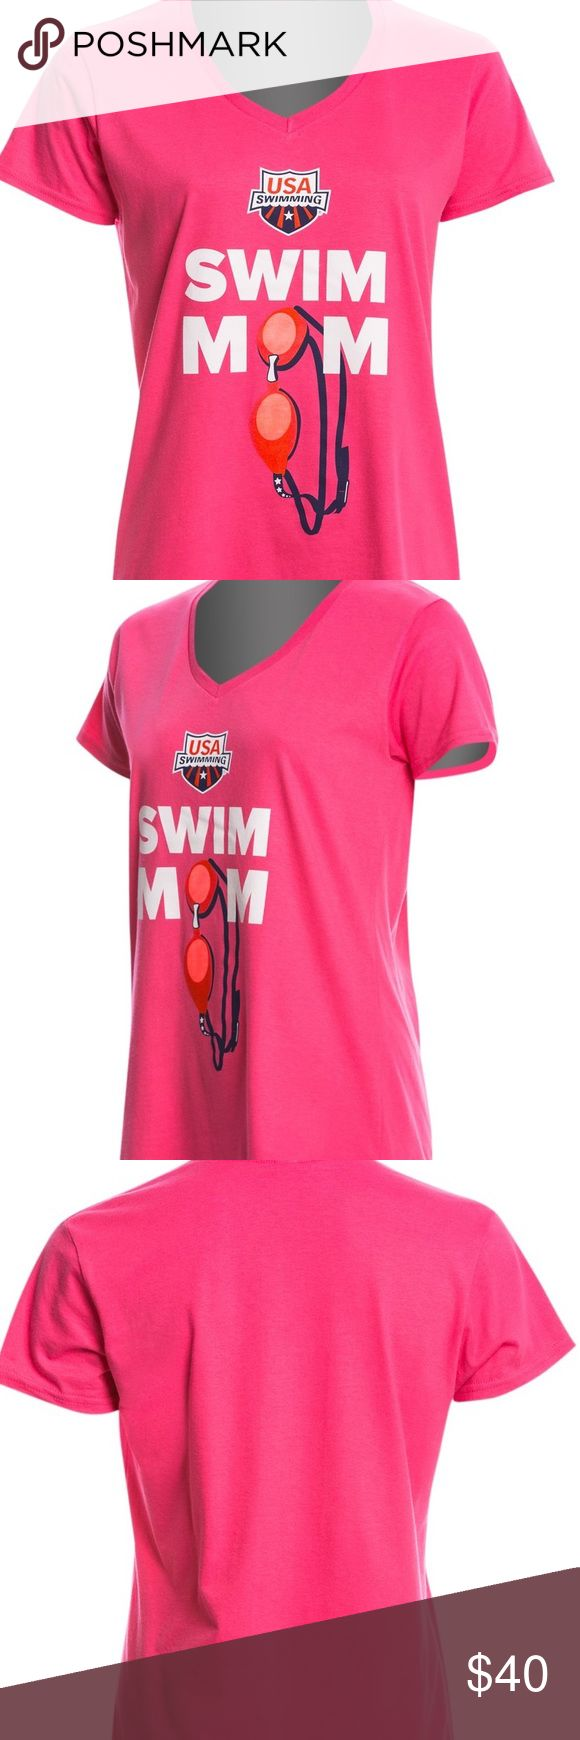 Gray Swim Mom V-neck Short Sleeve Tee. USA SWIM Gray Swim Mom V-neck Short Sleeve Tee. USA SWIM. Sz. Small. Give a loud and proud show of support for Team USA in the USA Swimming Women's Swim Mom V-Neck T-Shirt. A stylish v-neck design and comfortable ringspun cotton make this a great choice for extended comfort for casual purposes. Fabric 100% Ringspun Cotton. Features Screen printed graphic on front. Short sleeve shirt. V-neck style neckline. Officially licensed. Tops Tees - Short Sleeve